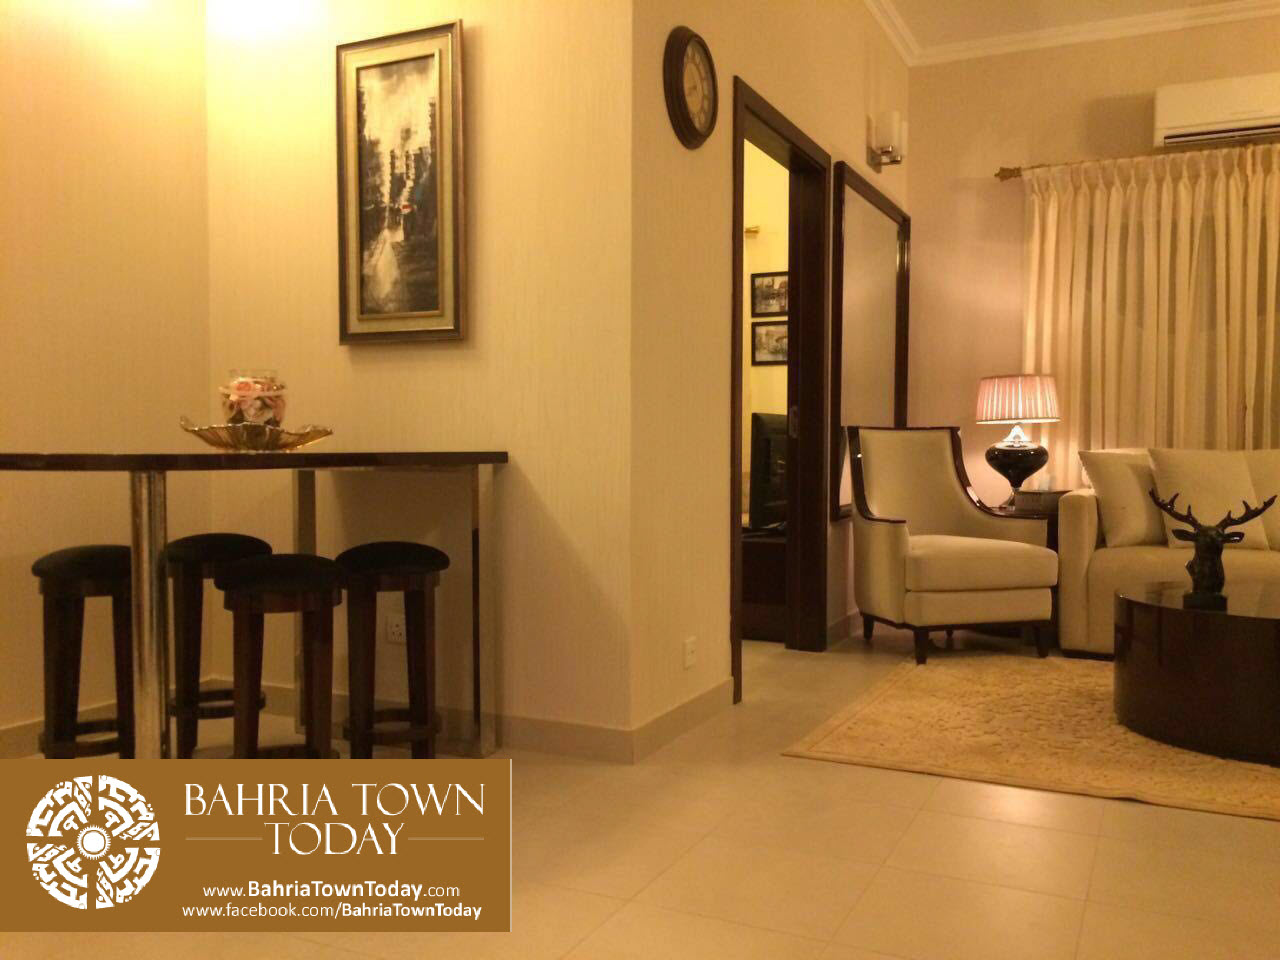 2 Bedroom Model Apartment – Bahria Town Karachi (4)